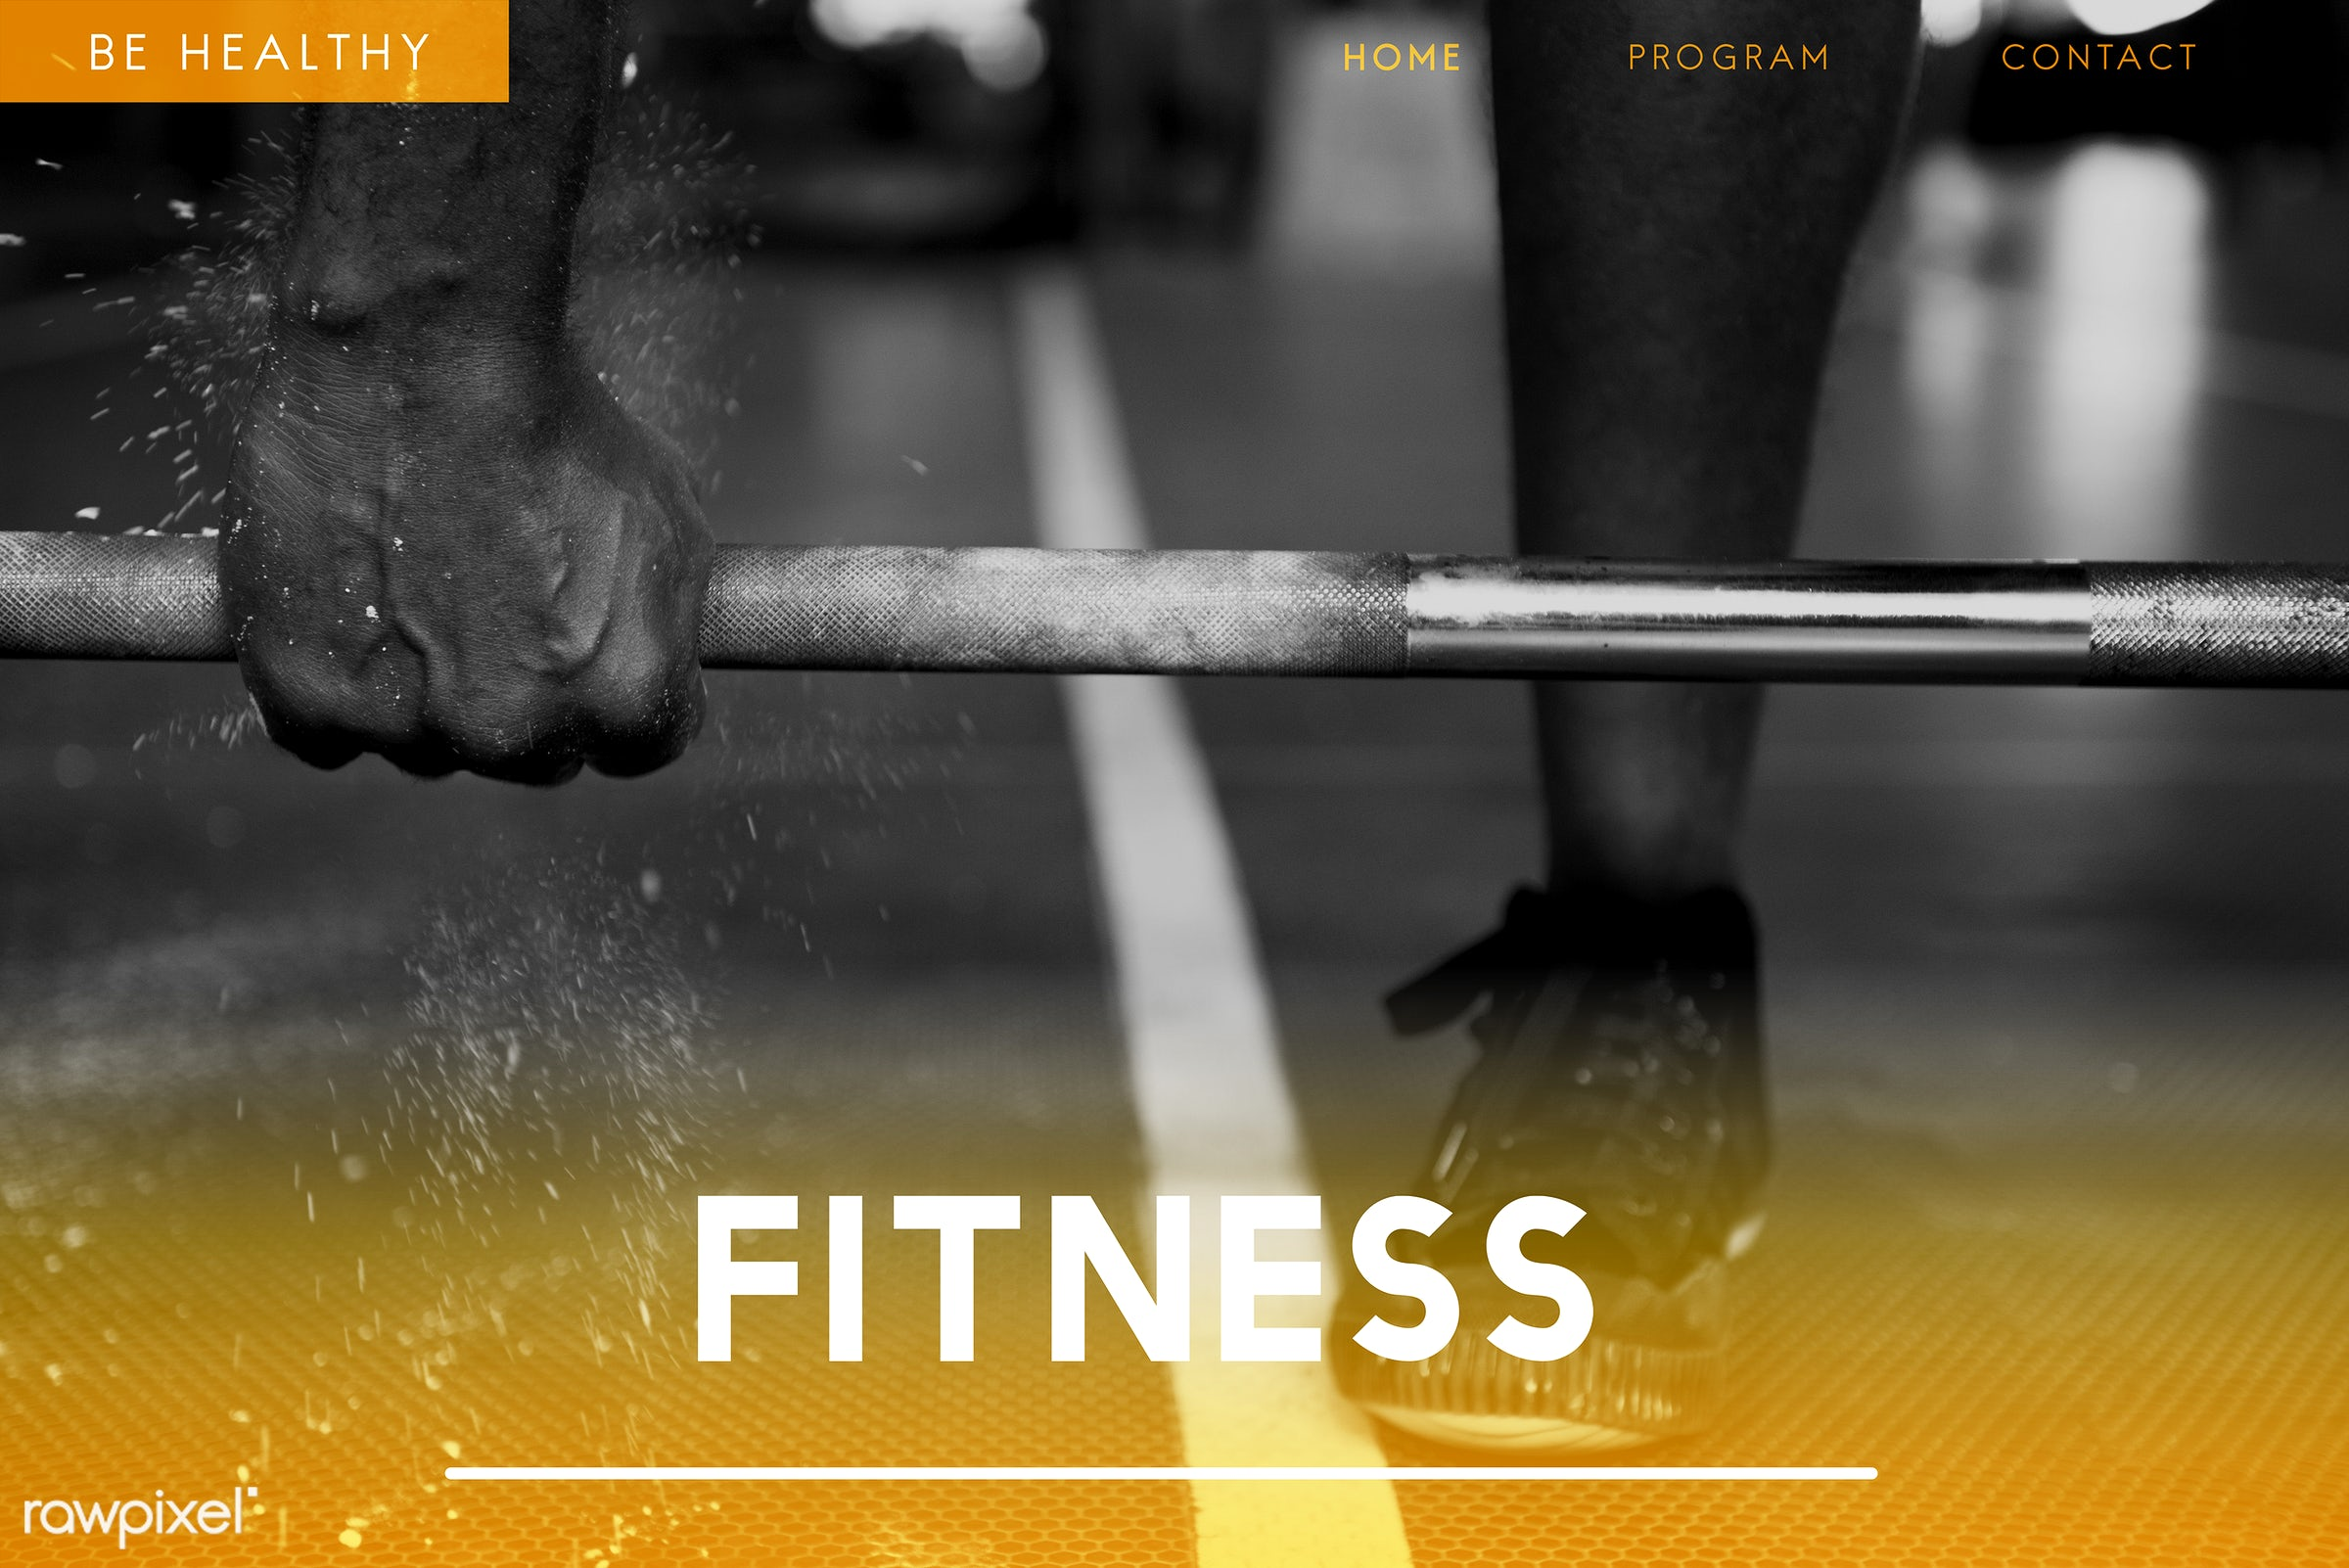 fitness, active, african descent, athletic, balance, barbell, benefits, black, black people, body, care, exercise, fit, grab...